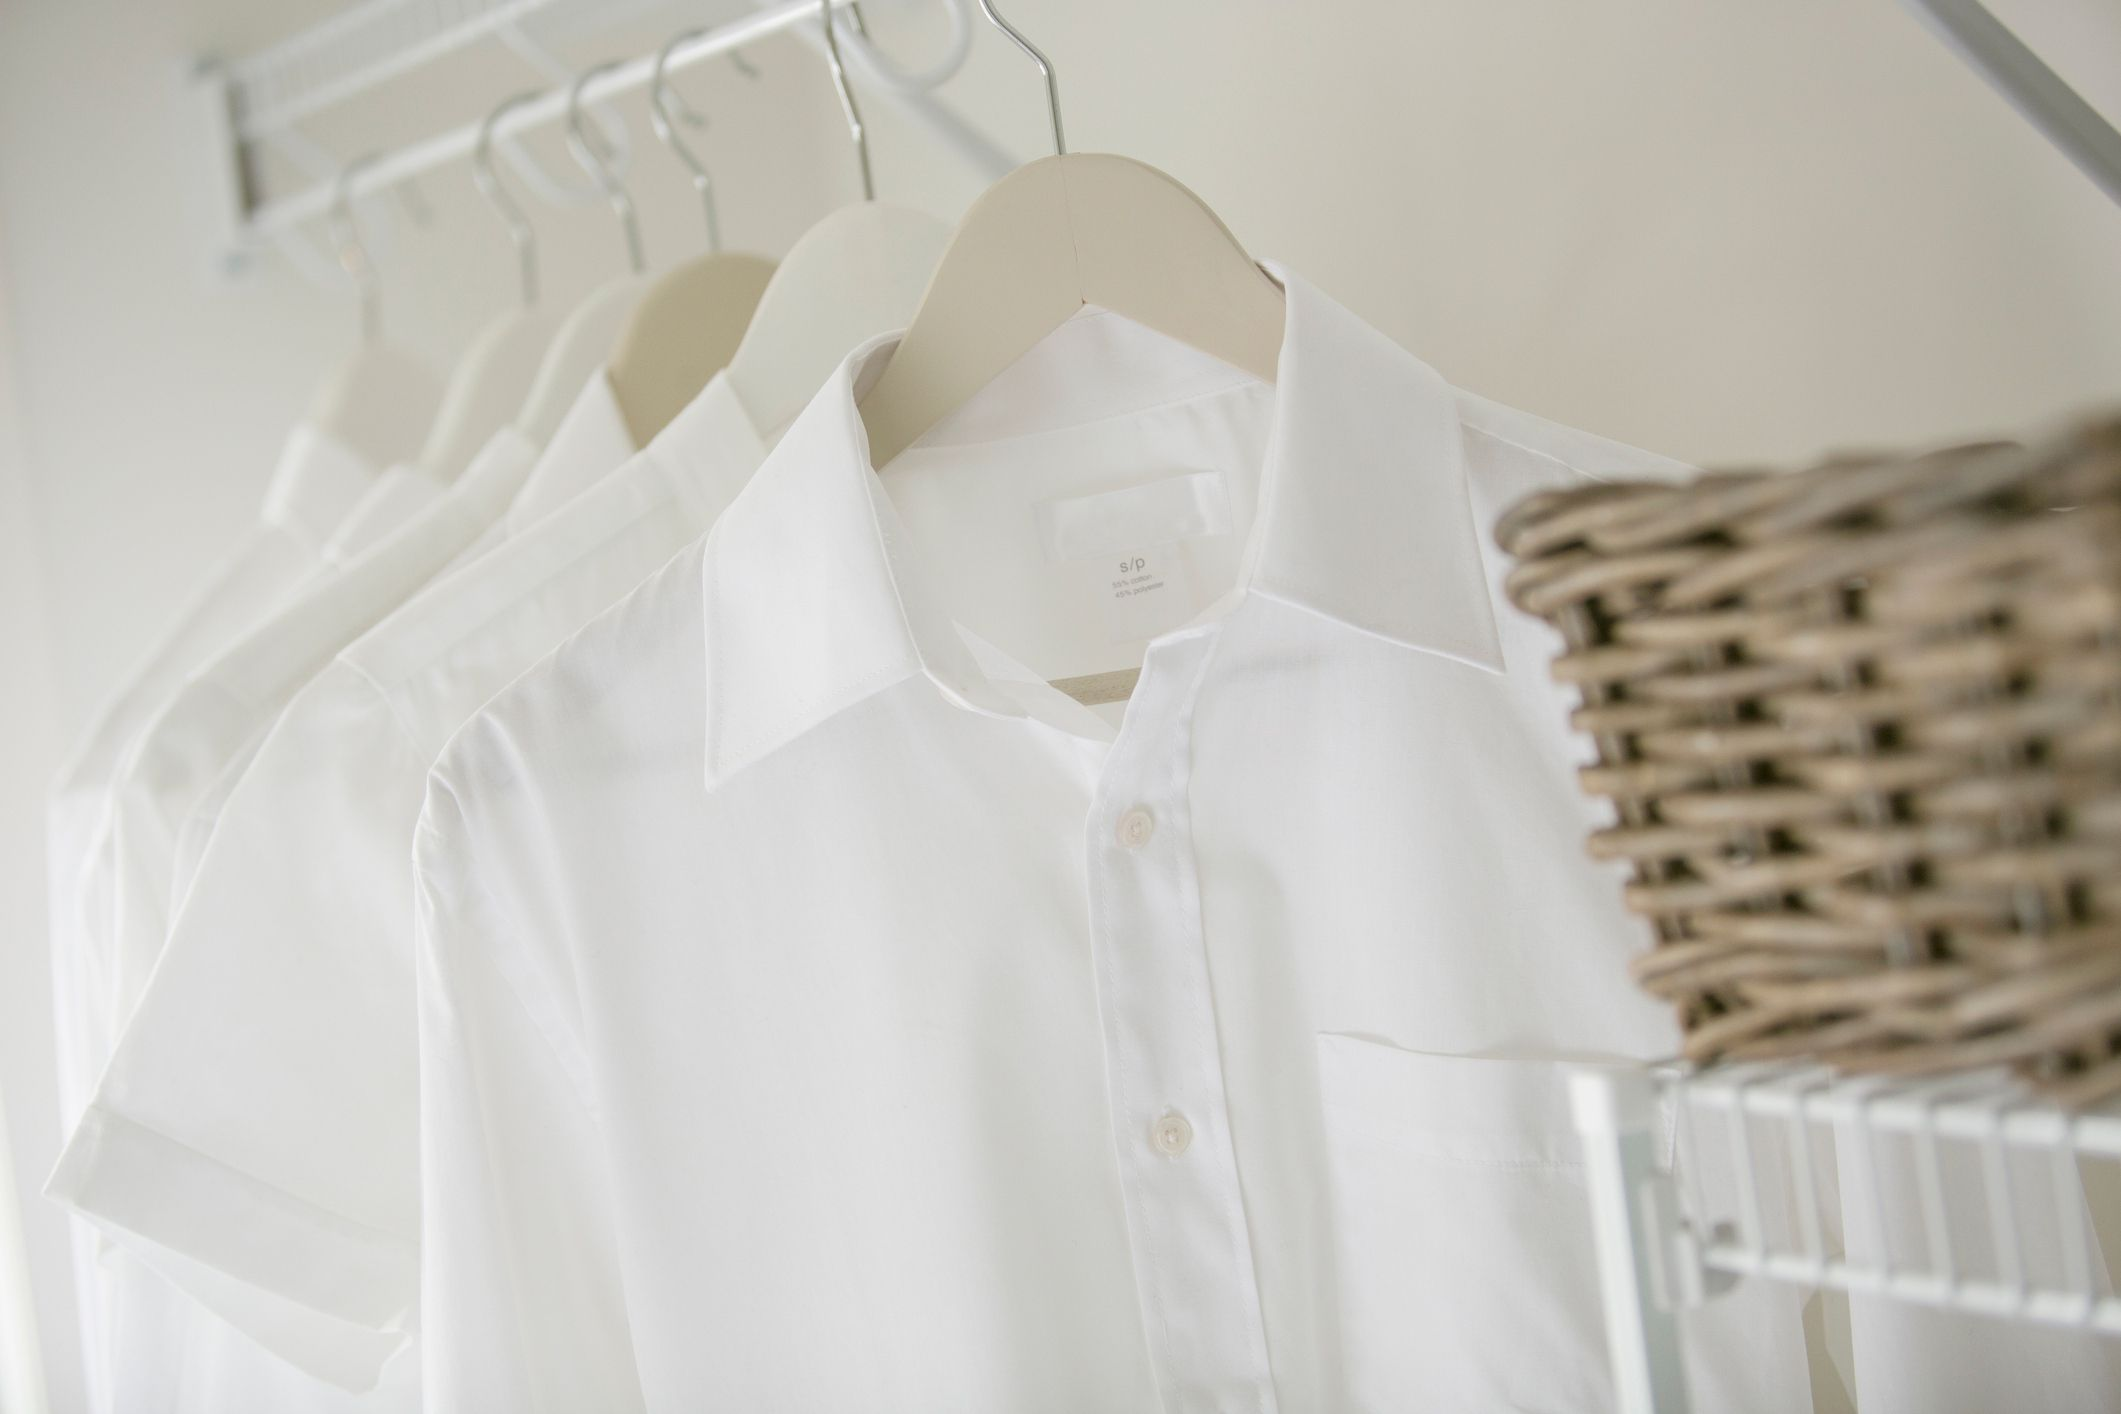 How To Remove Underarm Stains And Odor From Clothes